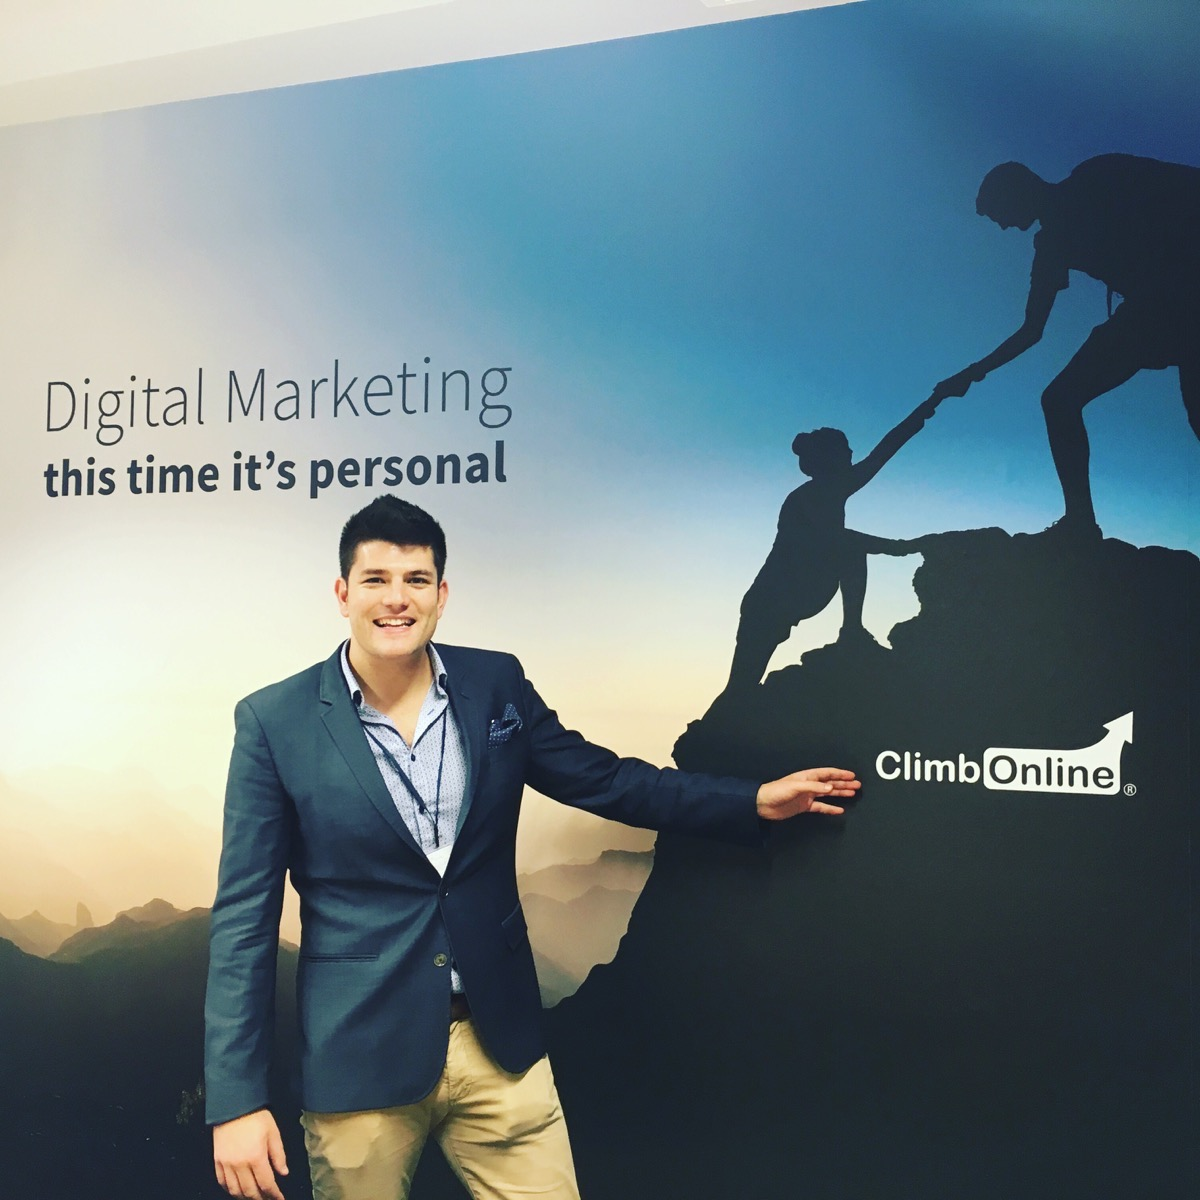 Mark Wright: Digital marketing and business development